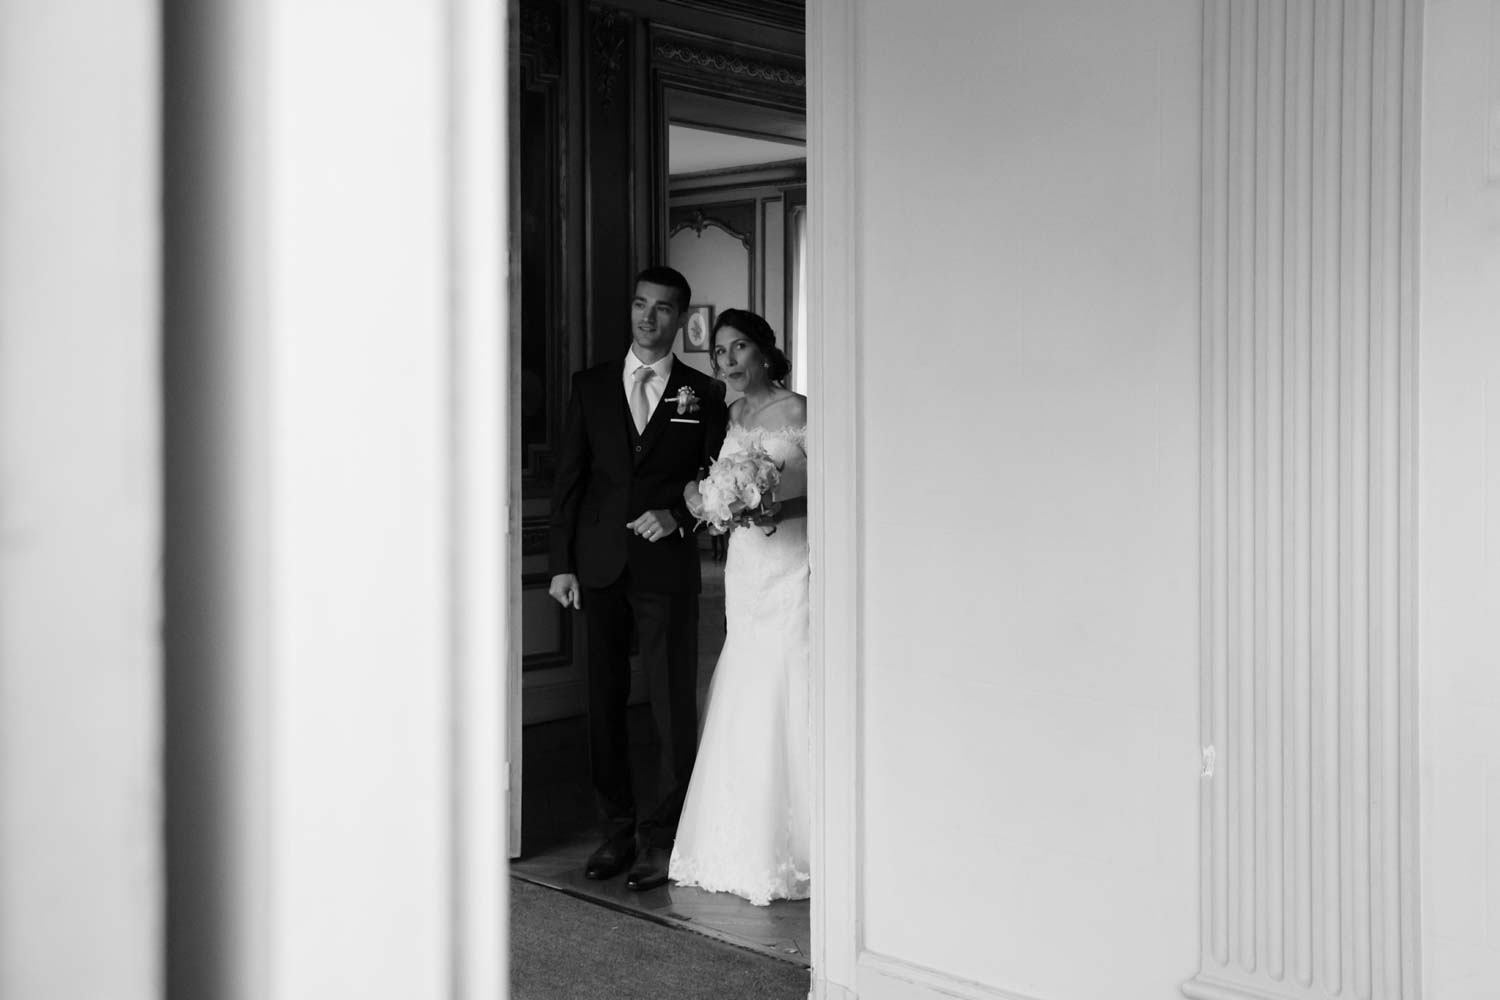 mariage-reportage-photo-photograhe-vergers-du-roy-chilly-mazarin-essone-00130021